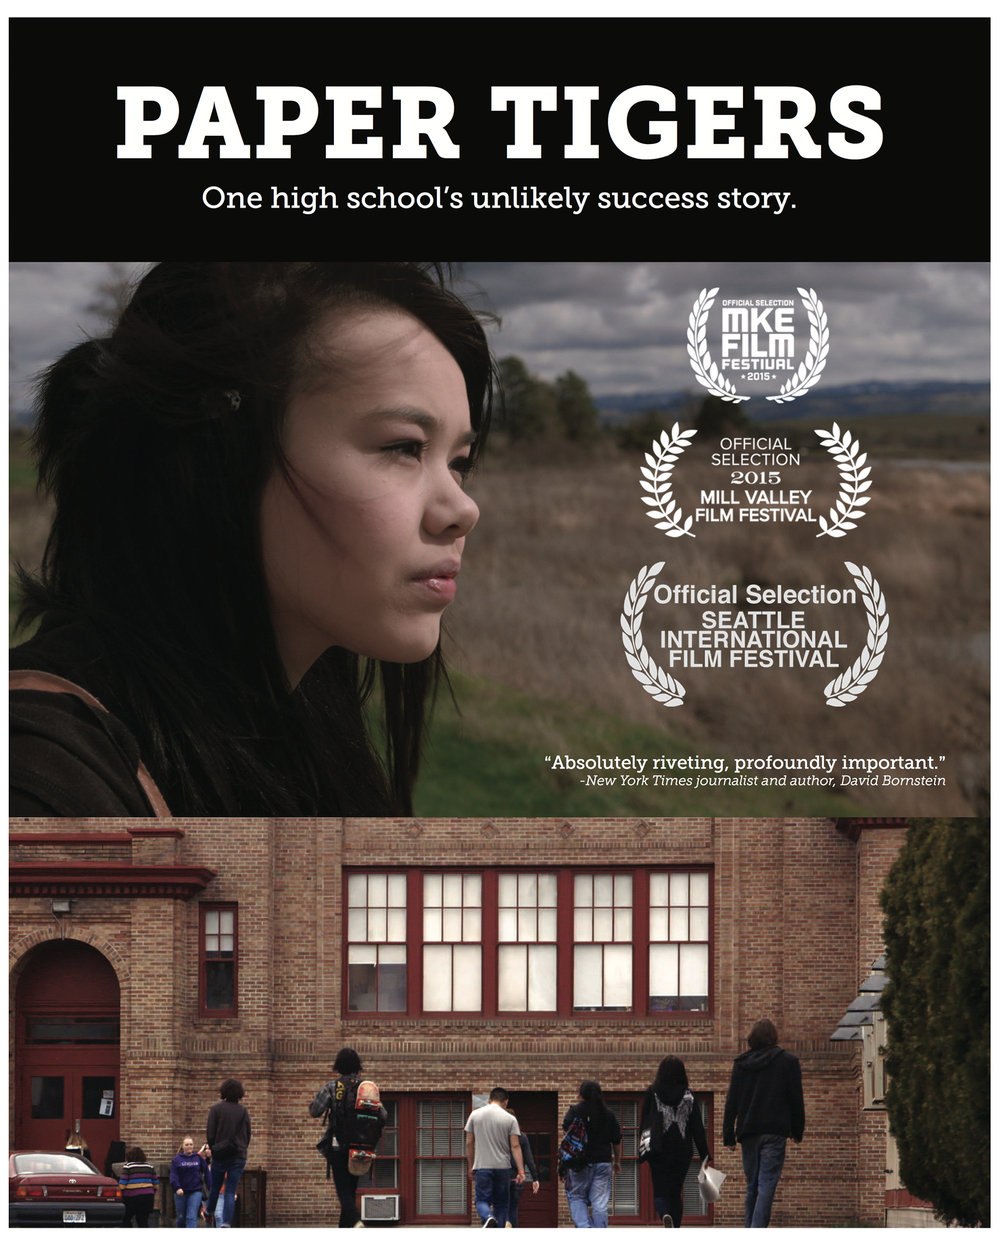 Poster-for-Paper-Tigers-1.jpg